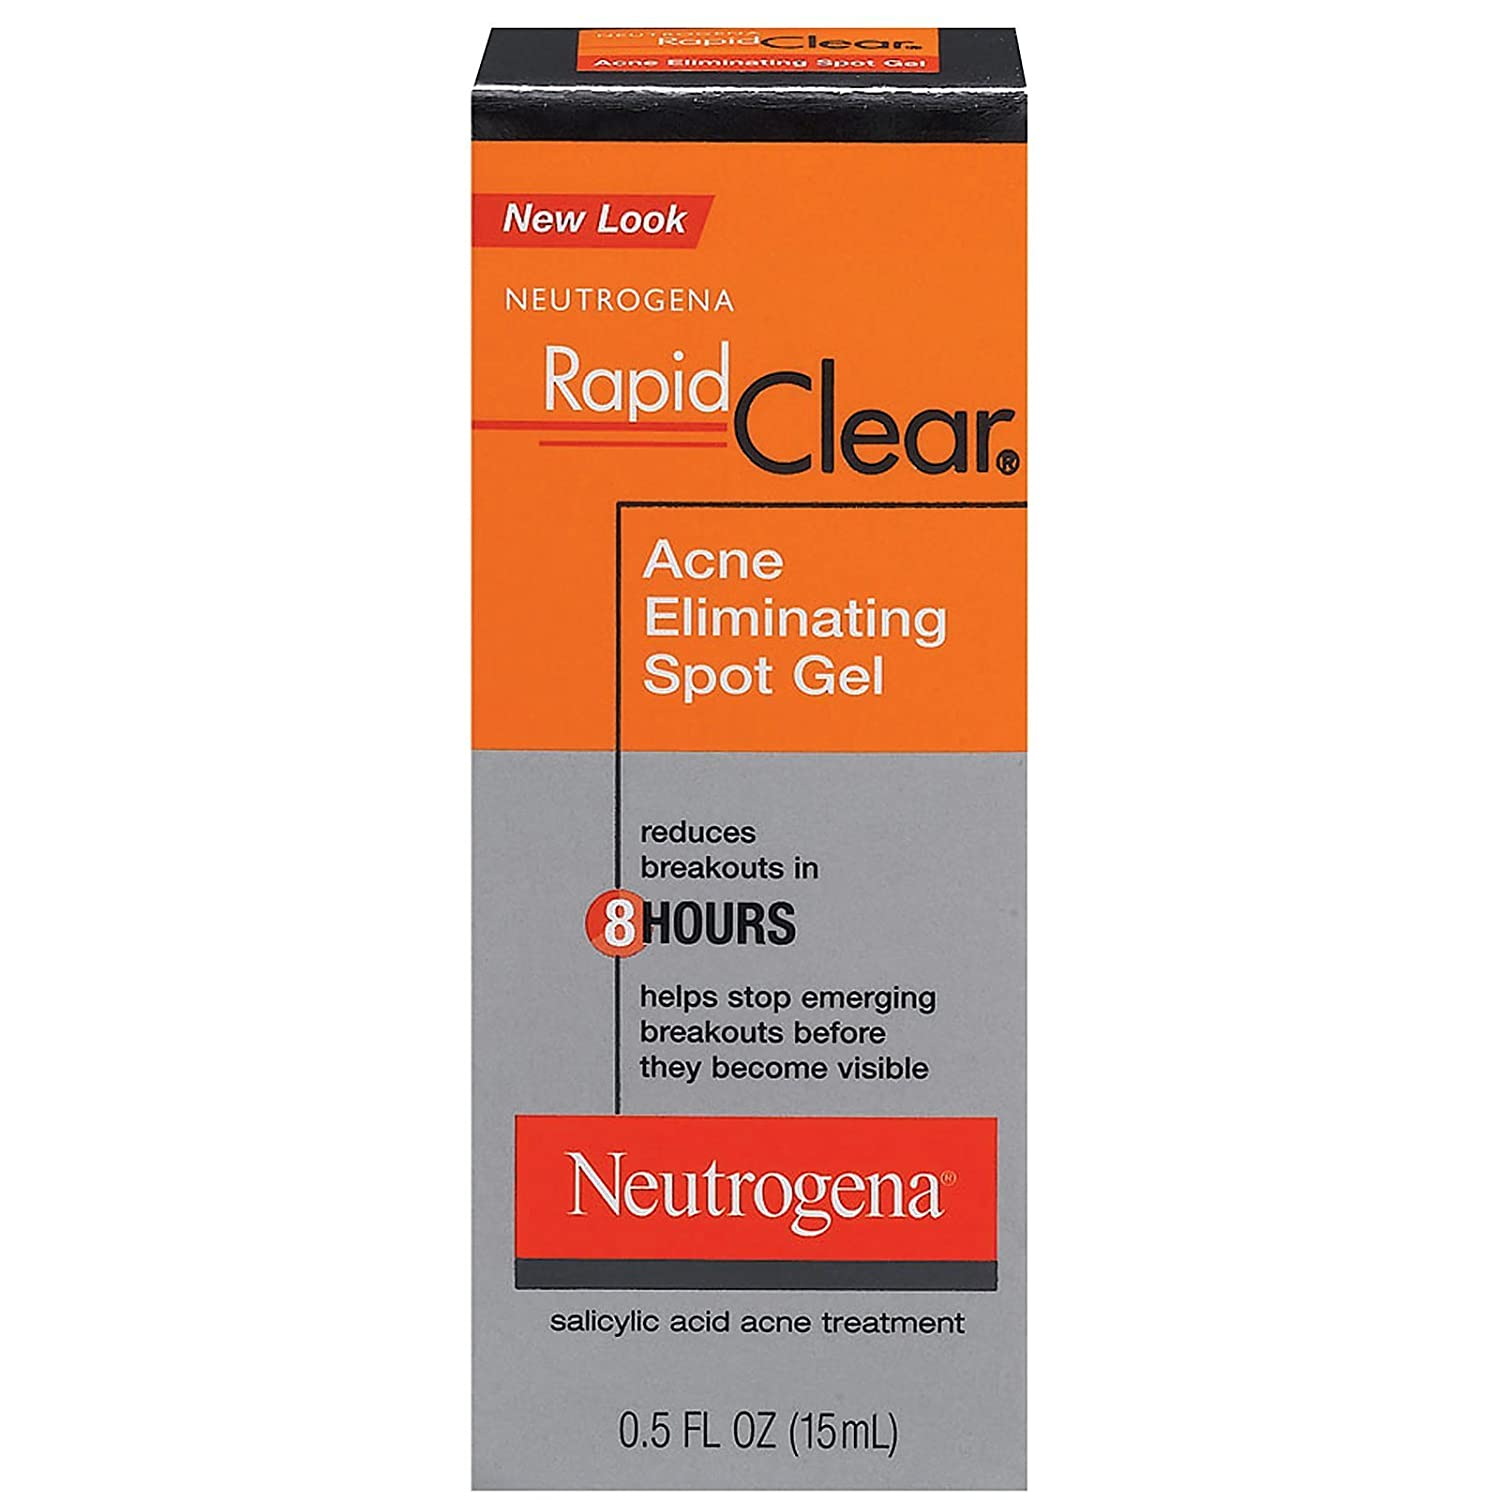 neutrogena rapid clear